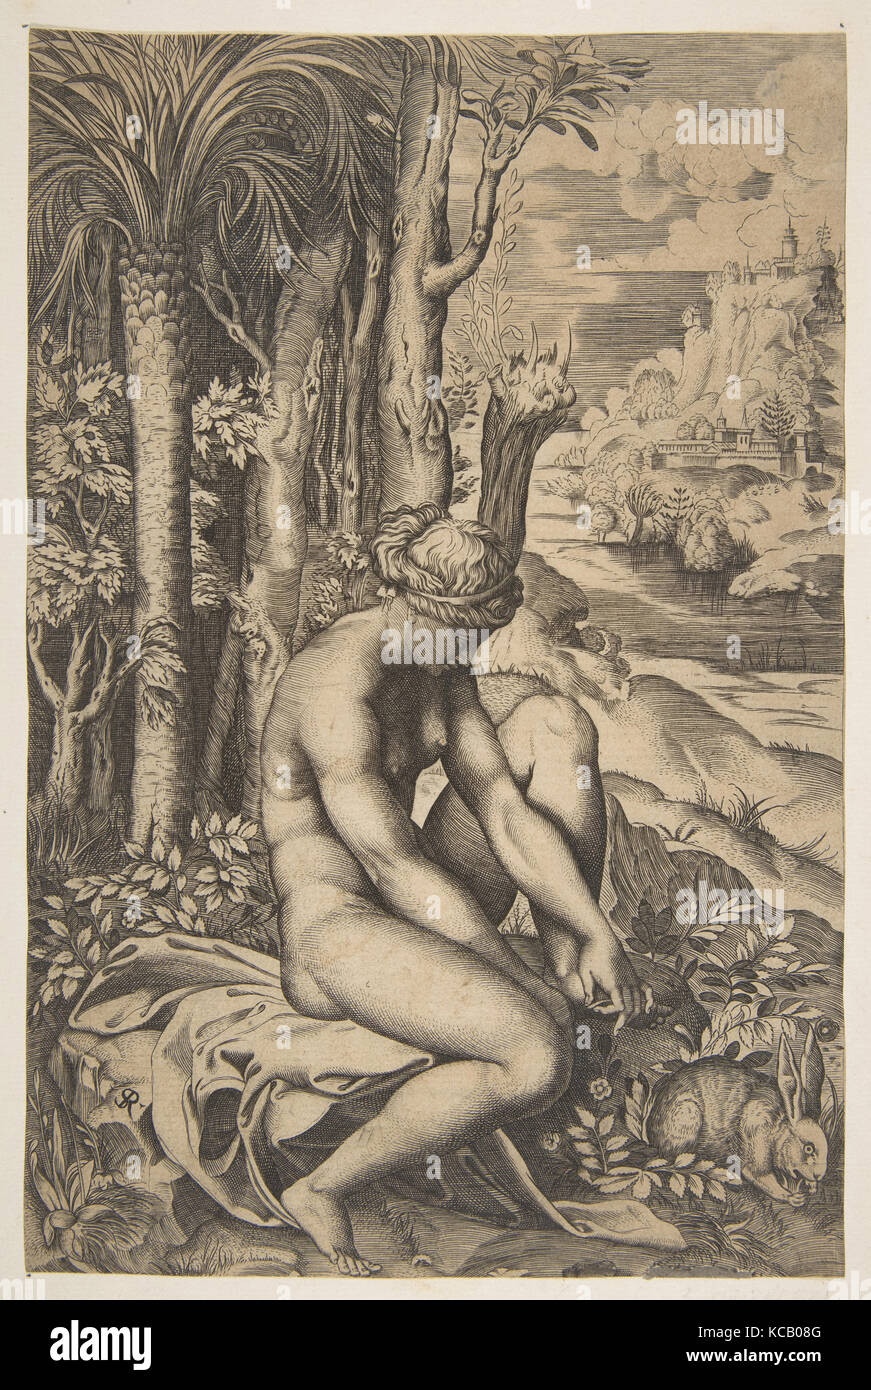 Venus removing a thorn from her left foot while seated on a cloth beside trees and foliage, a hare eating grass - Stock Image